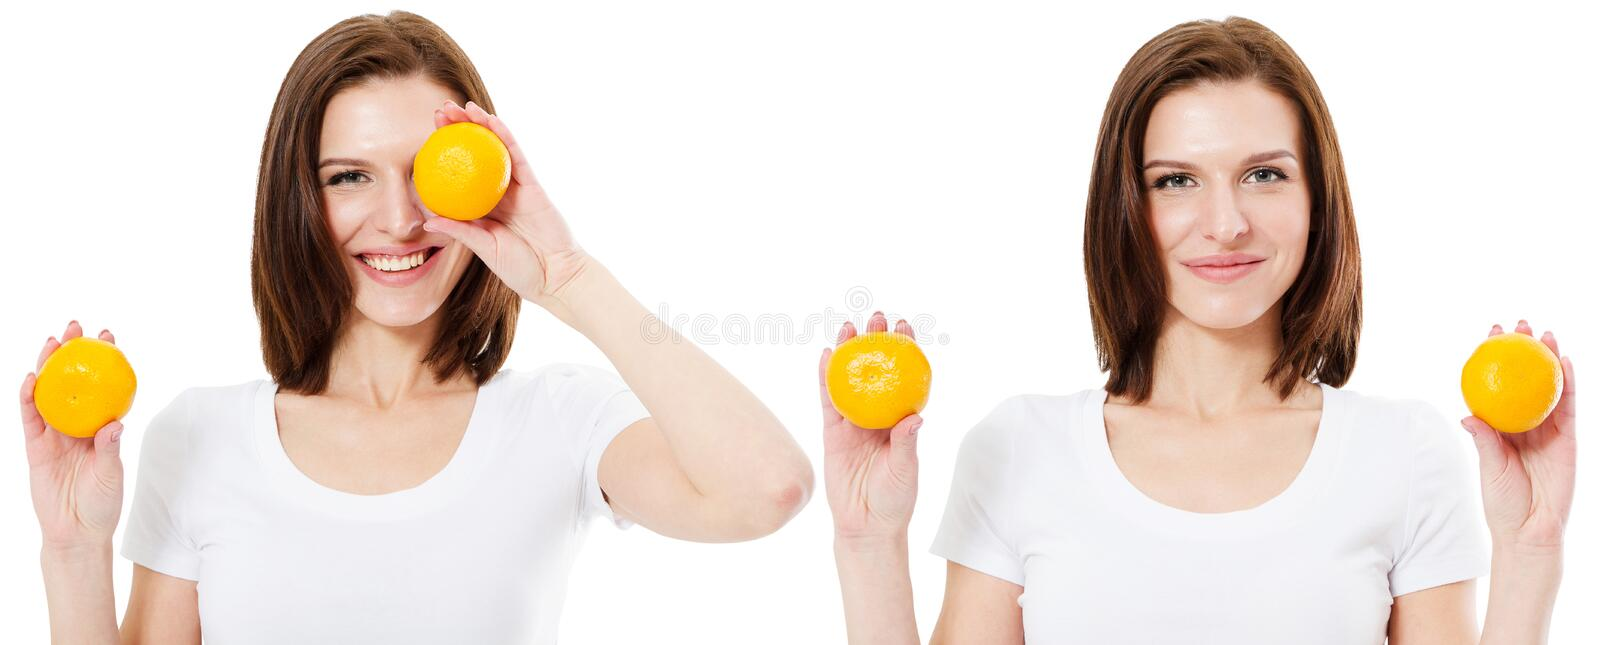 Beauty Model Girl takes Oranges. Professional make up. Orange Slice. Beauty, cosmetics and fashion concept.  royalty free stock photography